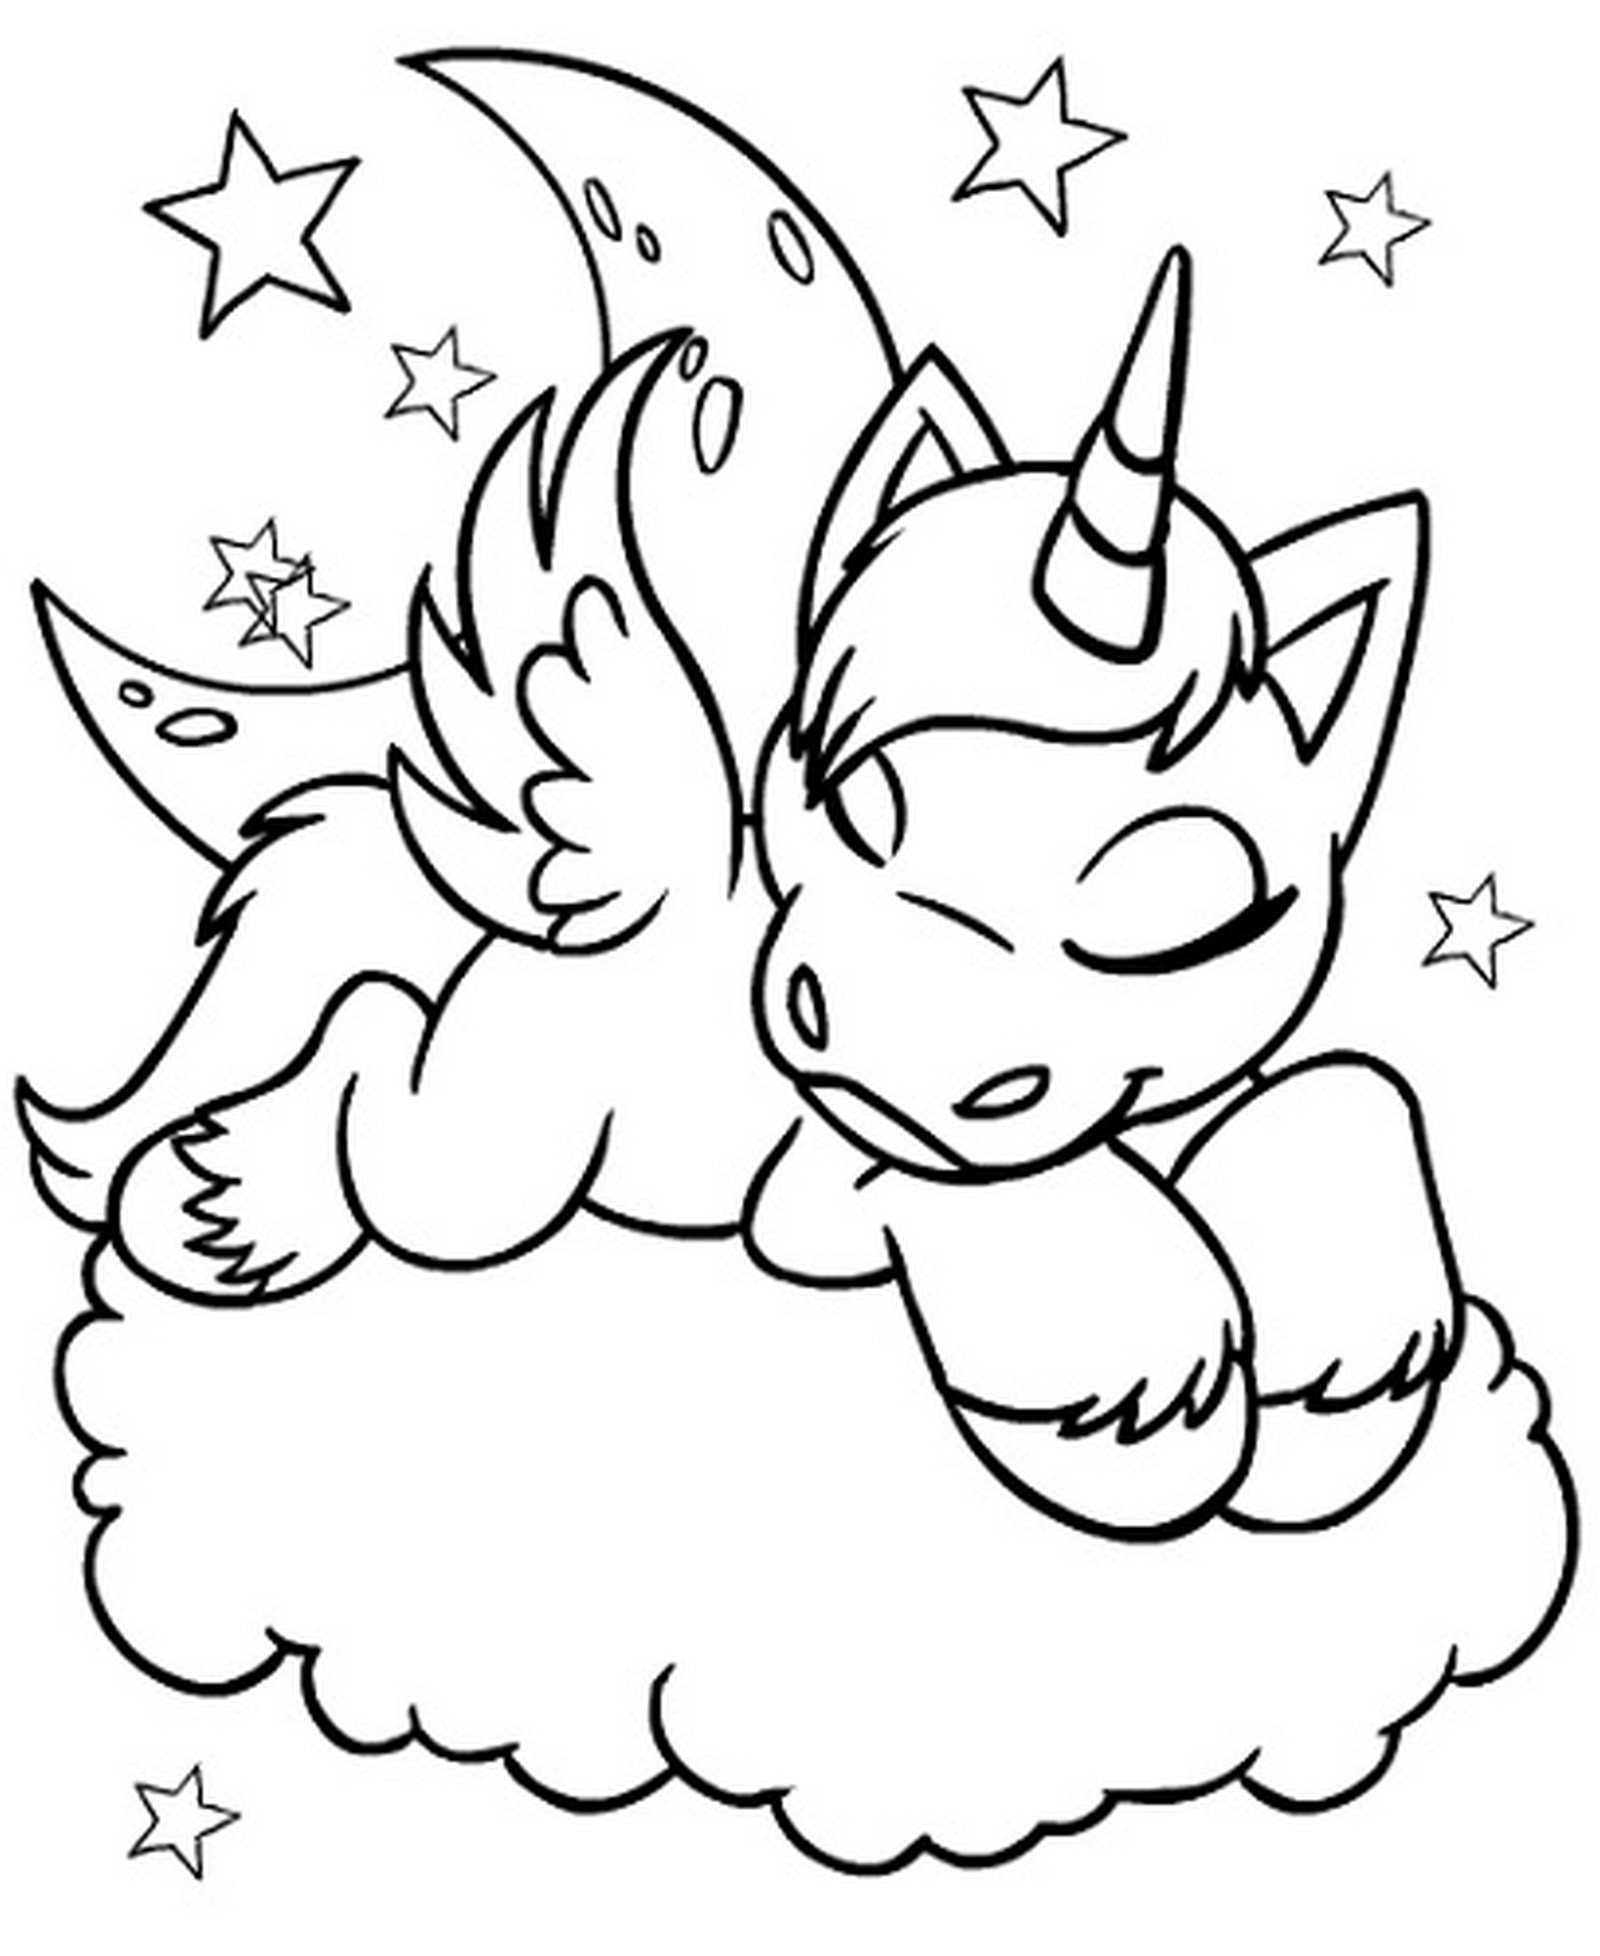 coloring pictures of unicorn downloadable unicorn colouring page michael o39mara books pictures coloring unicorn of